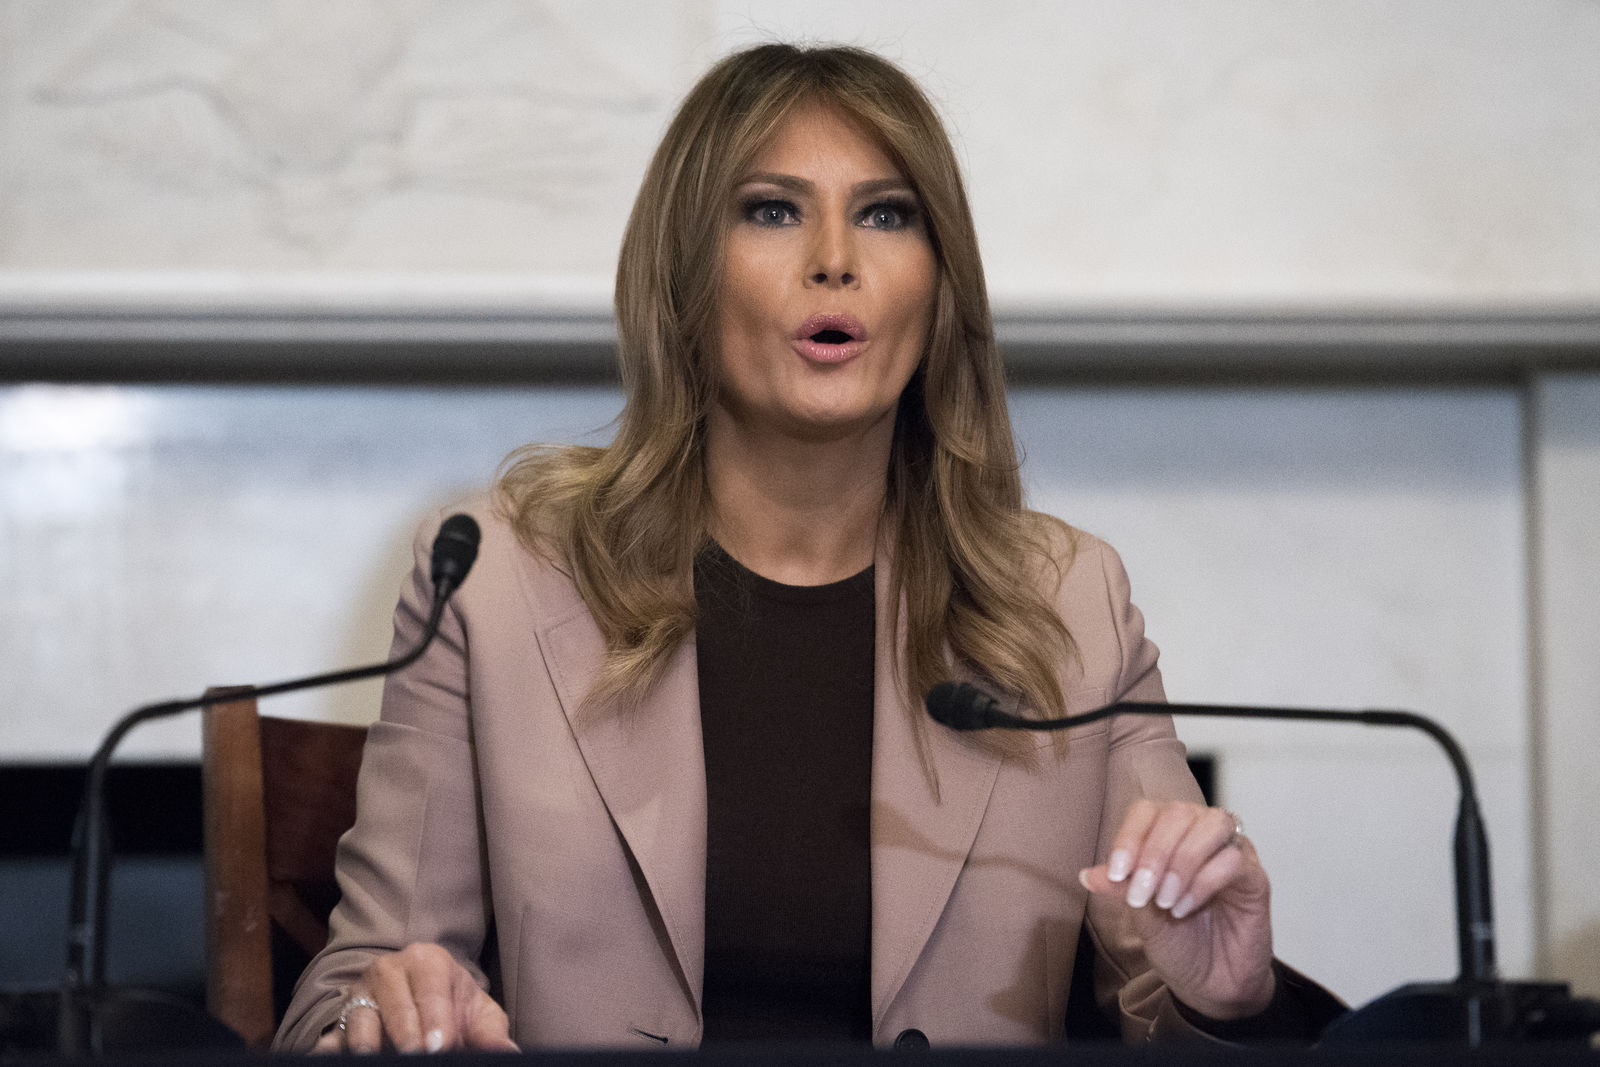 First lady Melania Trump participates in a roundtable discussion on the opioid crisis, on Capitol Hill in Washington, Wednesday, Oct. 23, 2019. The first lady marked the first anniversary of the President's signing of the SUPPORT for Patients and Communities Act and it's impact on the country. (AP Photo/Cliff Owen)